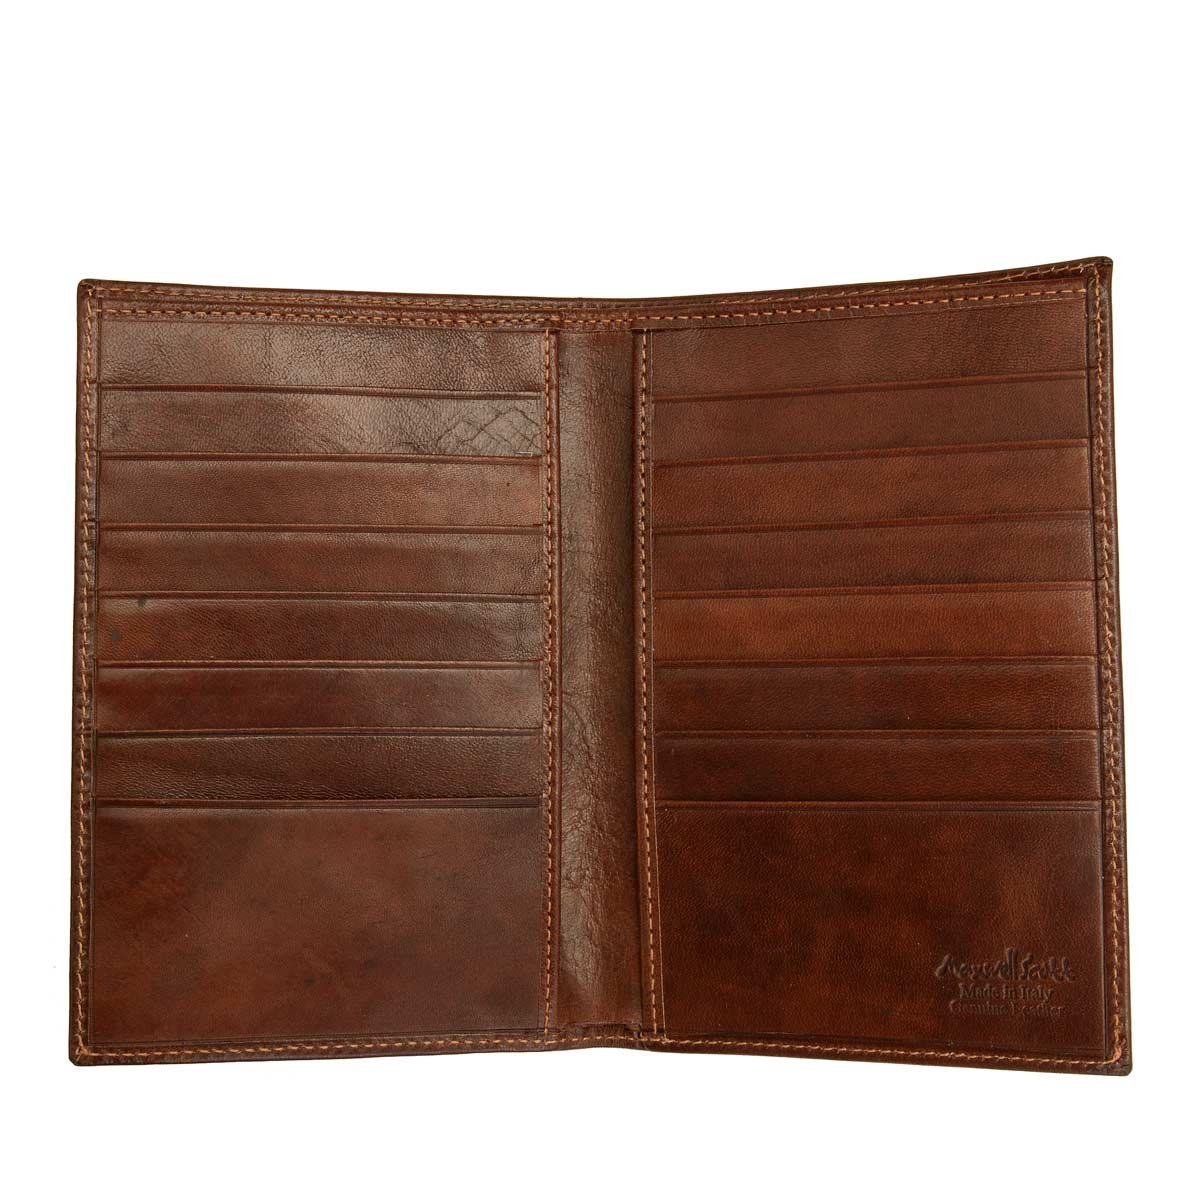 Maxwell Scott Luxury Tan Leather Jacket Wallet - One Size (The Pianillo) by Maxwell Scott Bags (Image #9)